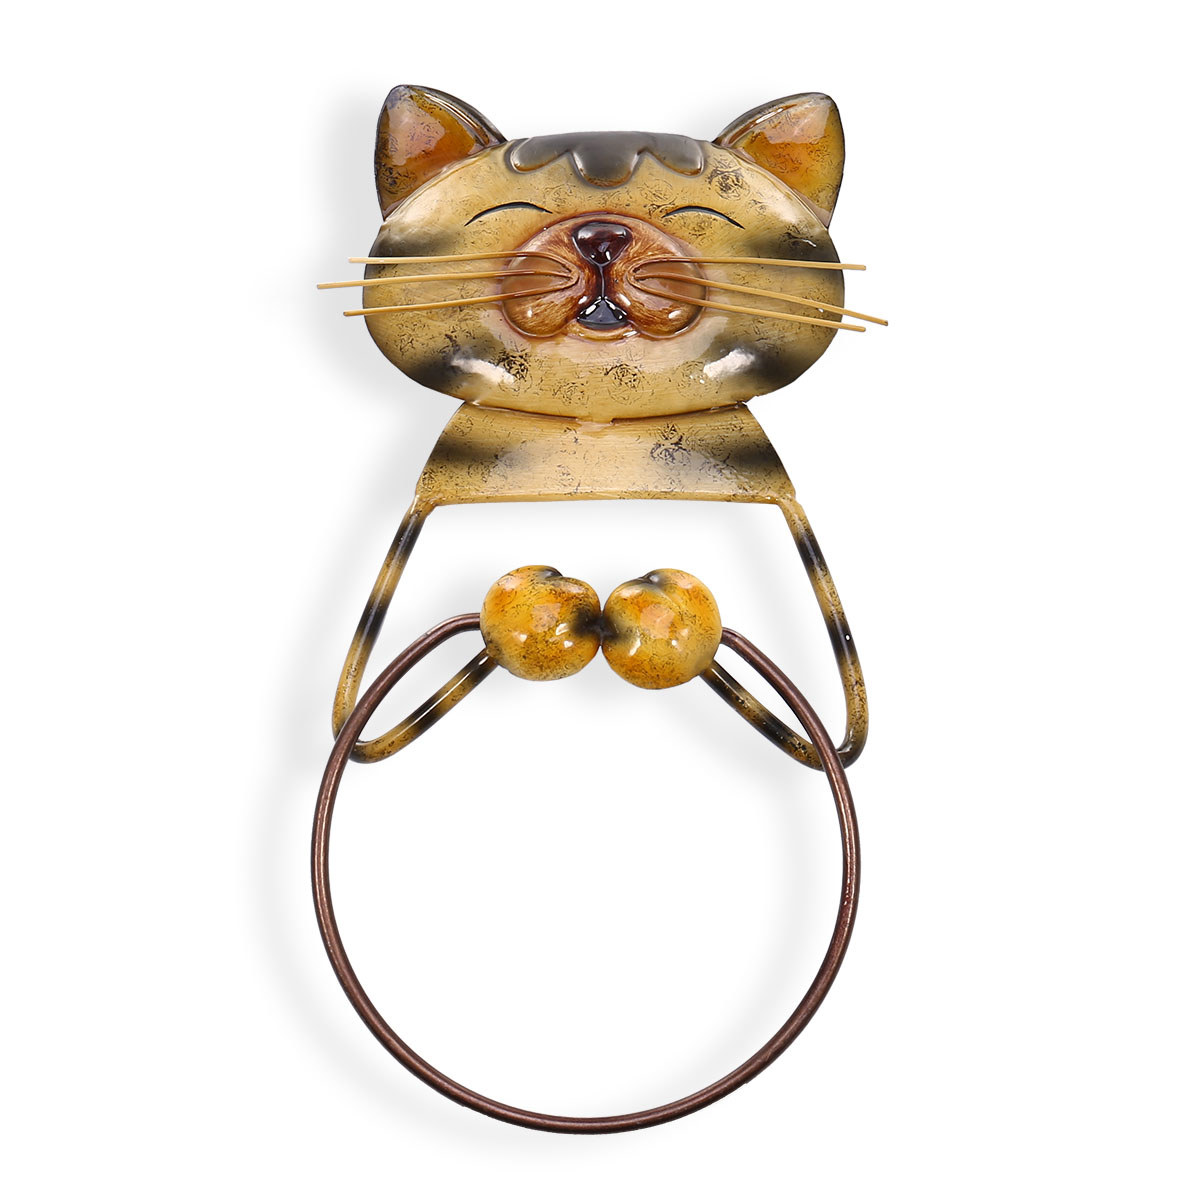 Best and cheap yellow Cat Towel Ring Holder Heavy Duty Iron Bathroom Hanger  Towel Holder Lovely Animal Bathroom Accessories - Tooarts com